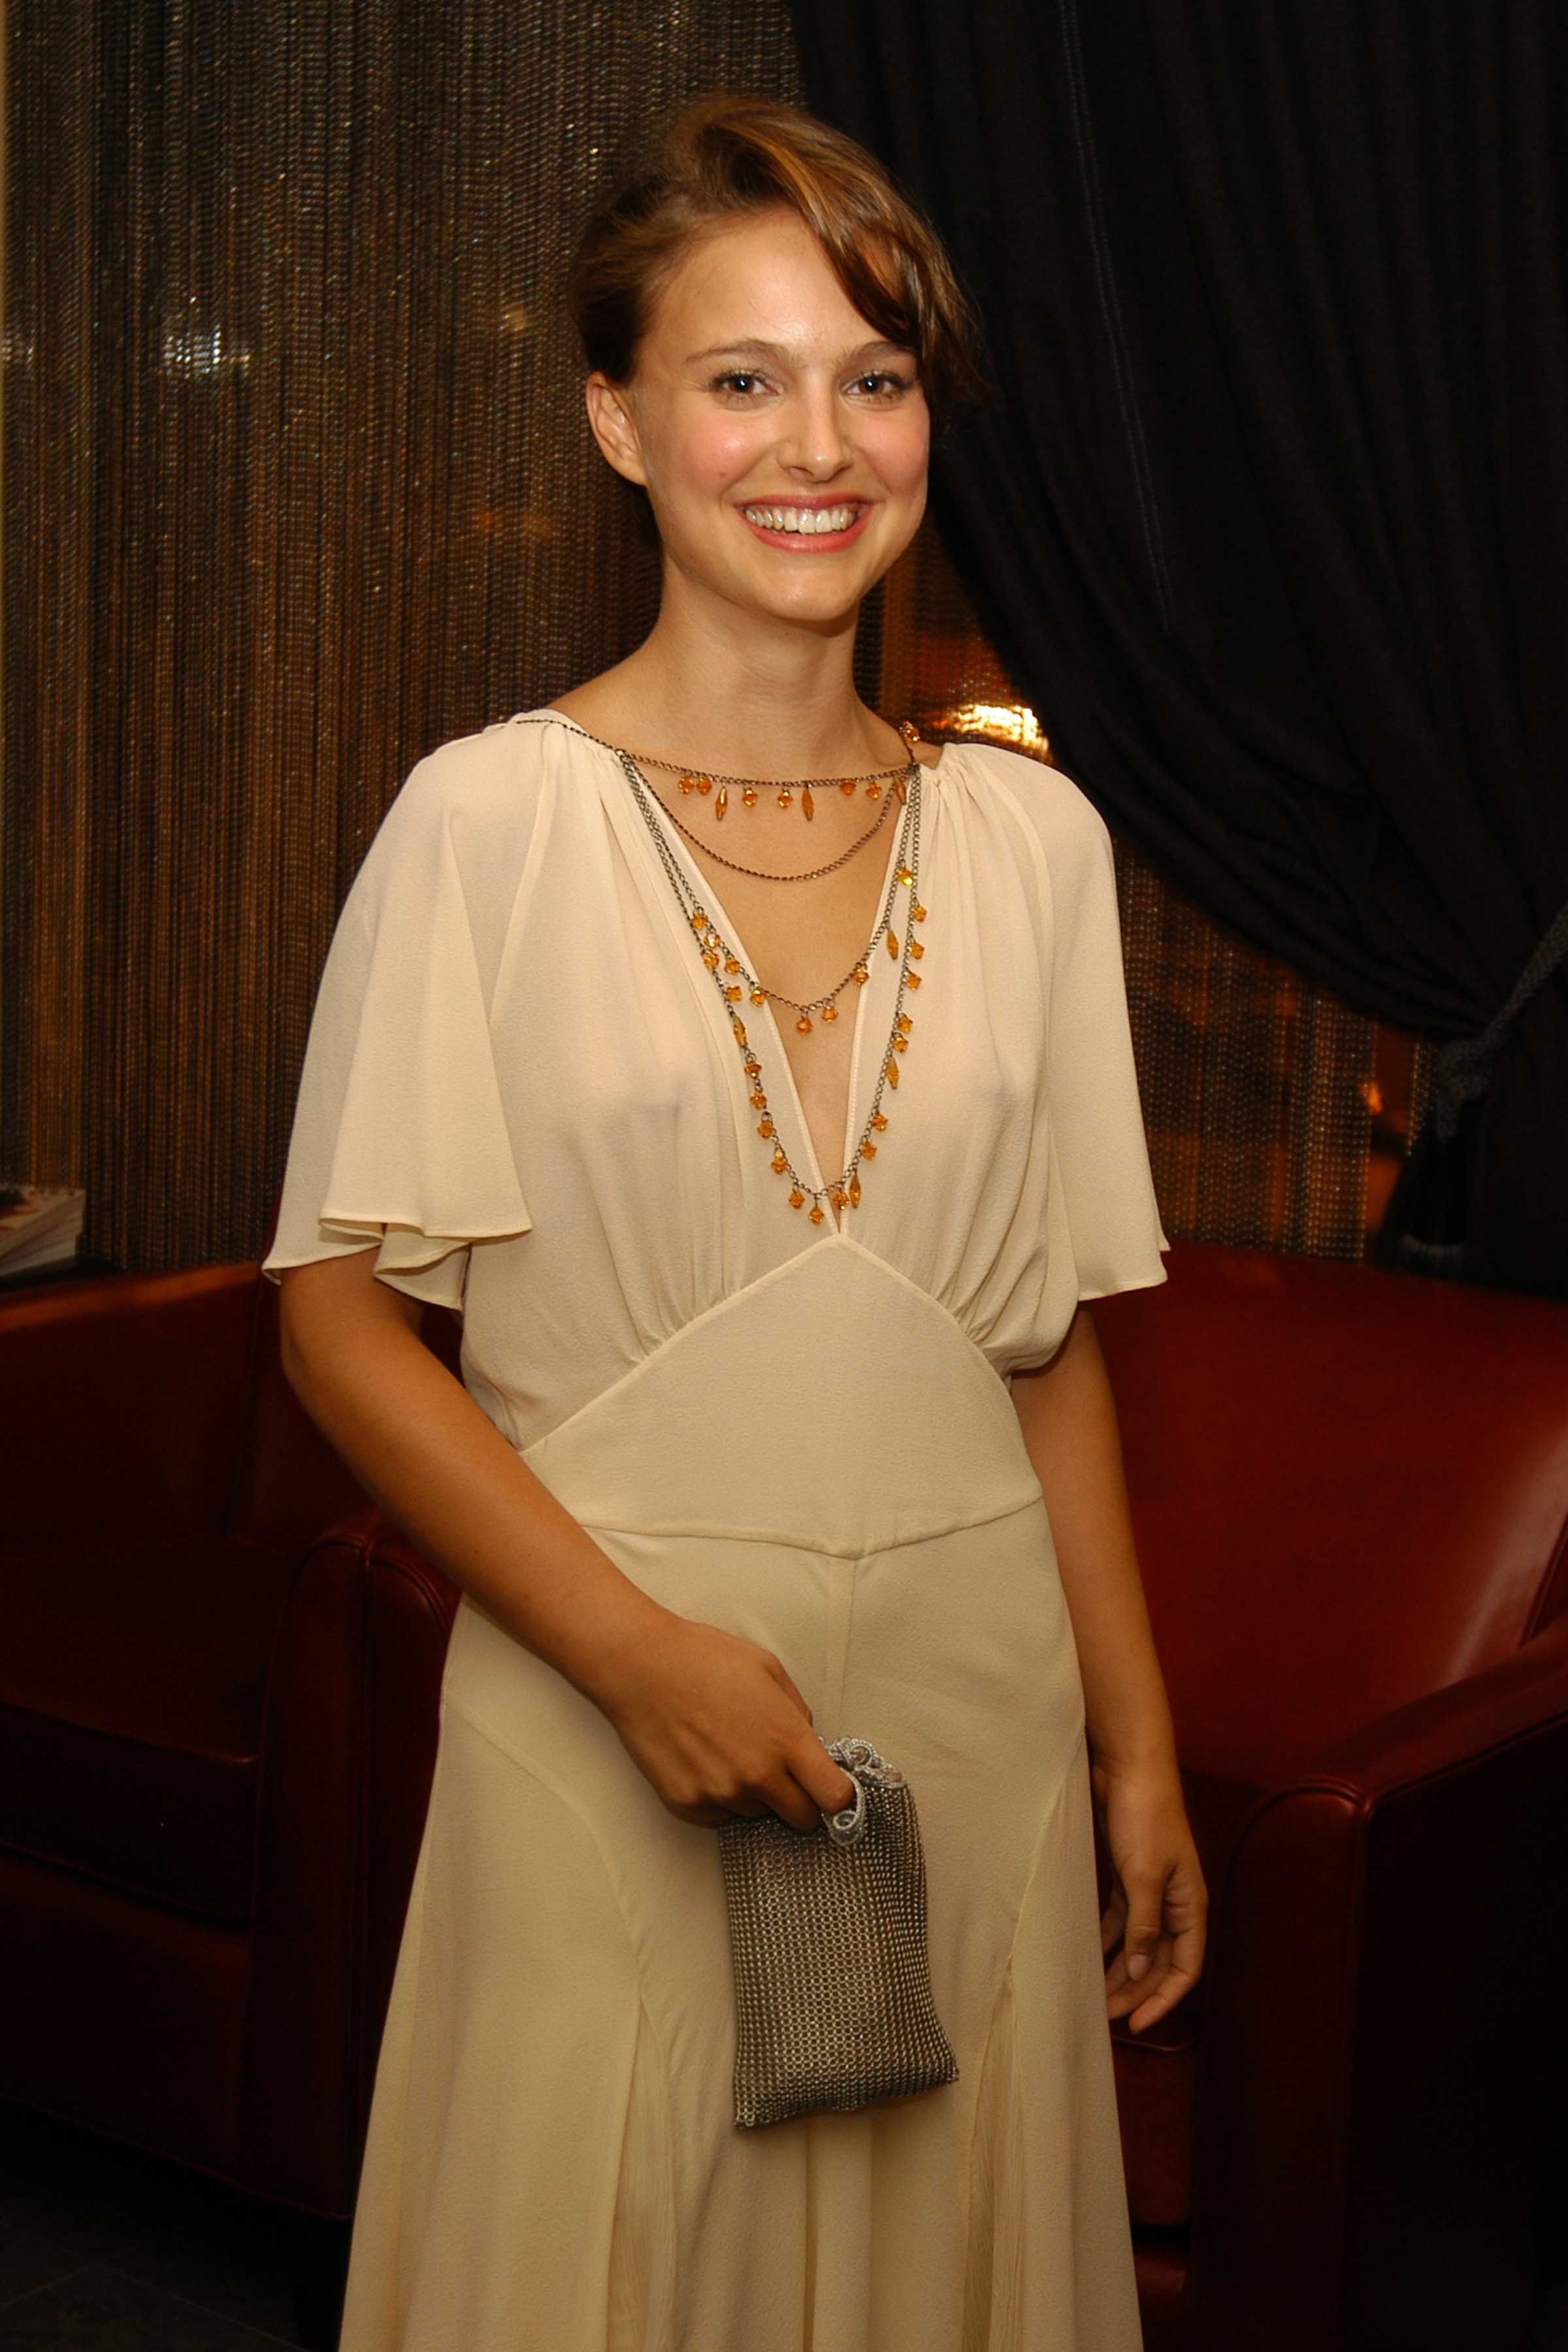 Rosamund kwan naked nude topless